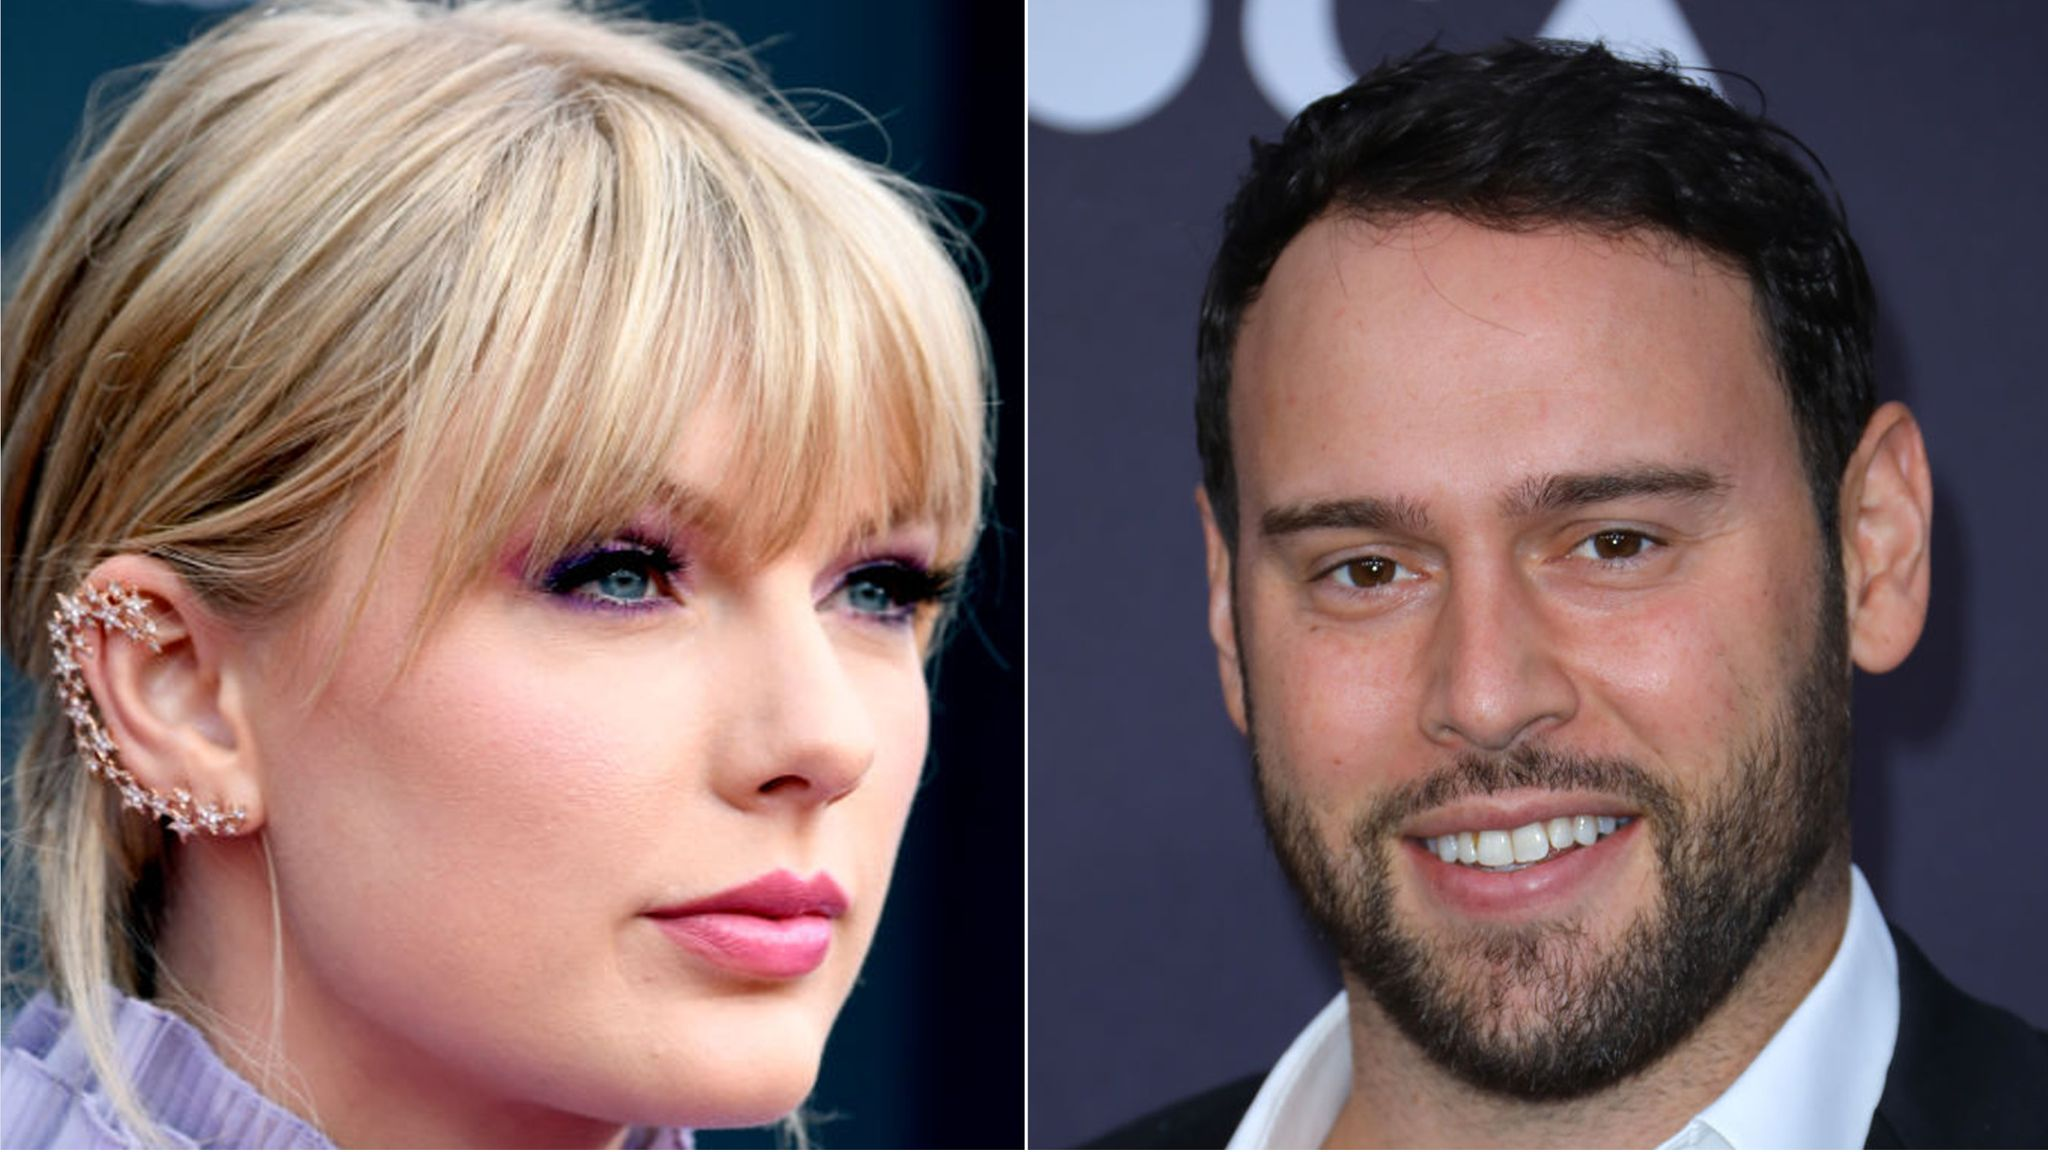 Scooter Braun denies 'malicious intent' in row with Taylor Swift